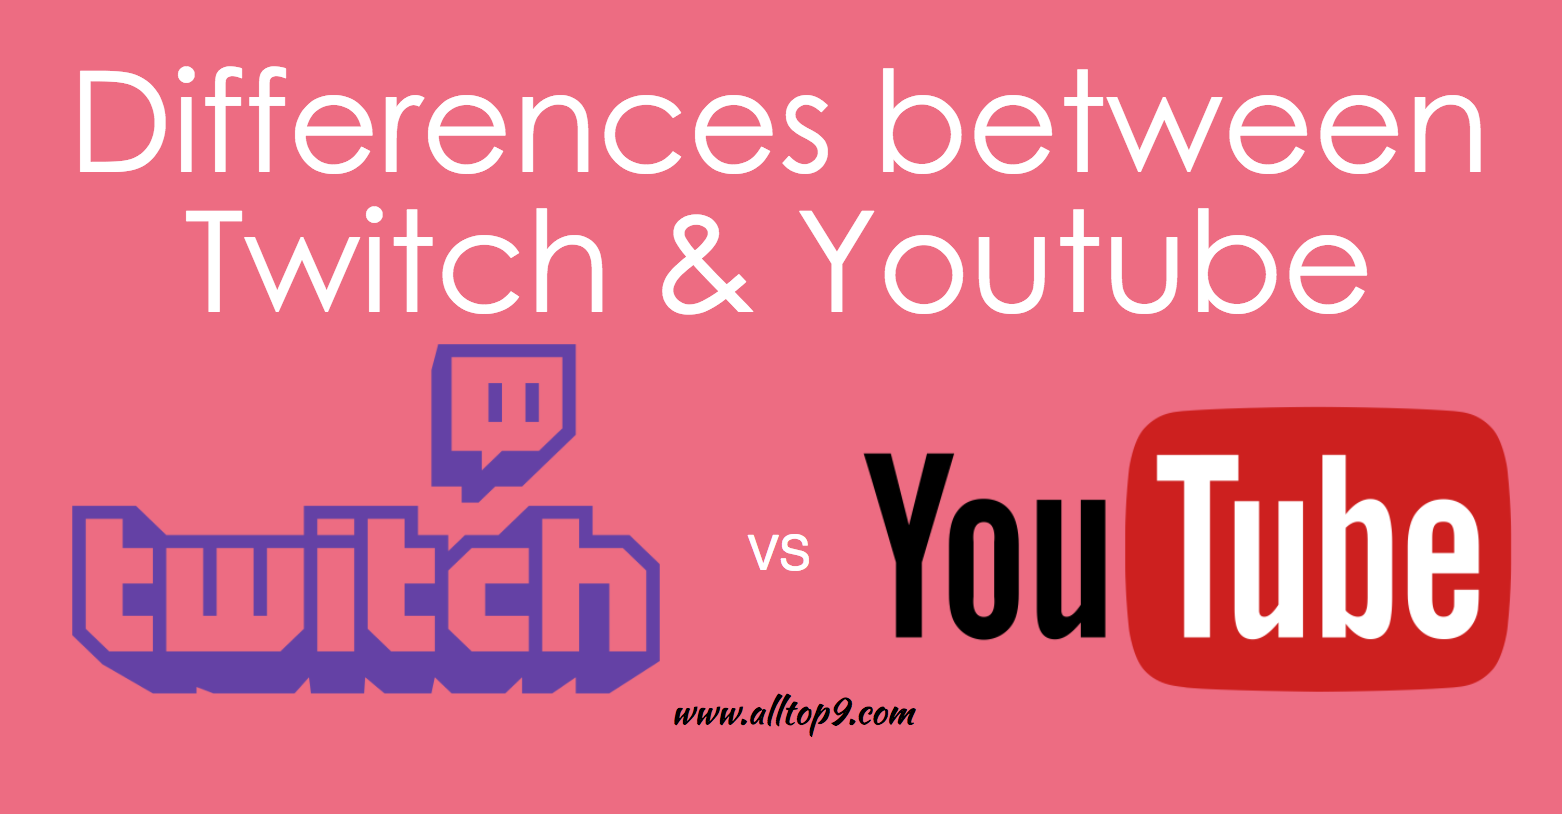 differences-between-twitch-youtube